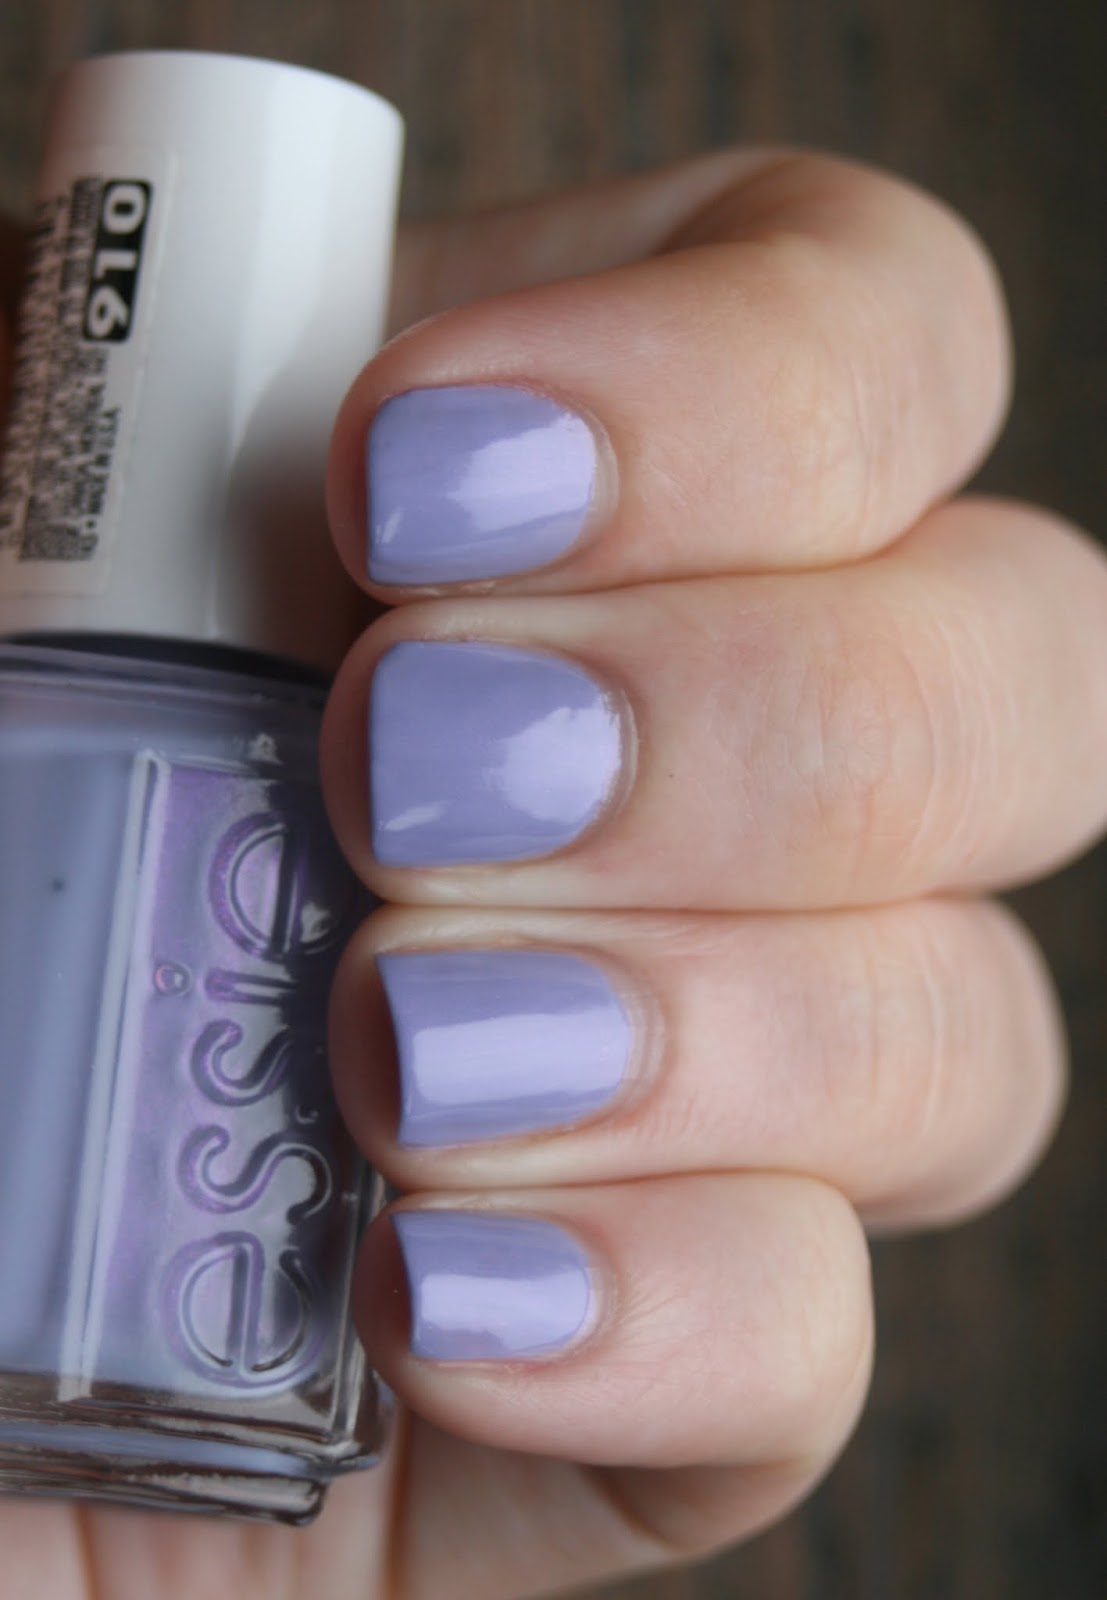 Essie She's Picture Perfect swatch